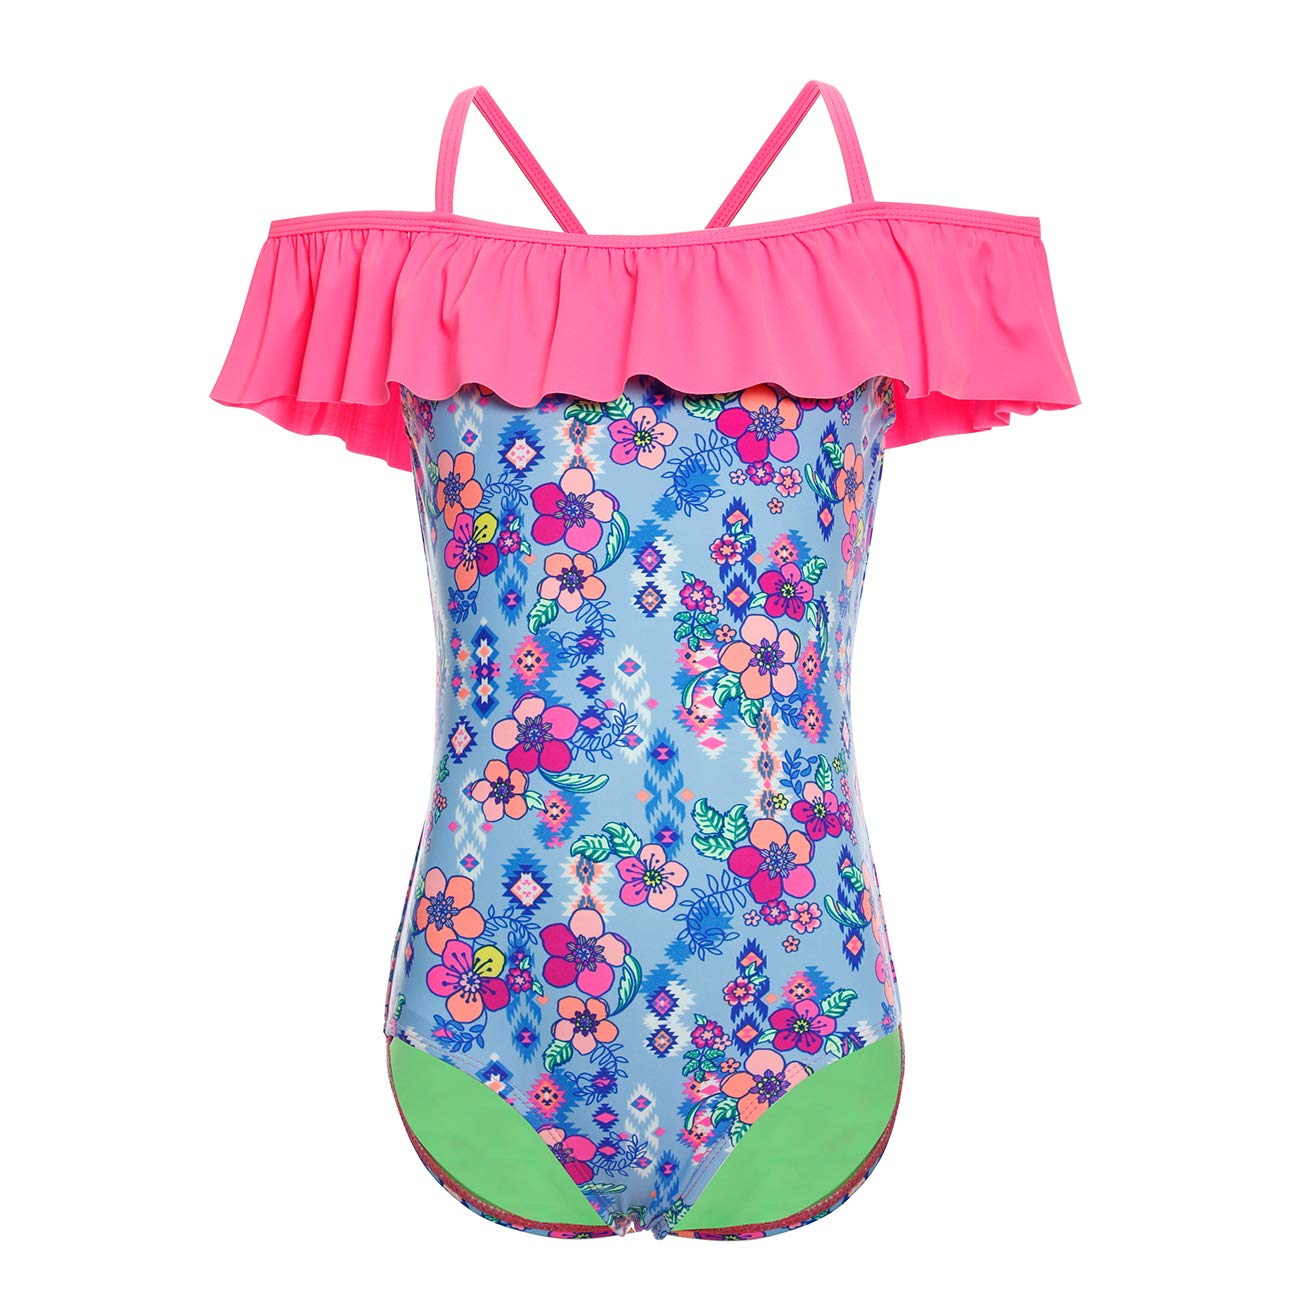 DAYU Girls Ruffles Off Shoulder One Piece Bathing Suit for Kids